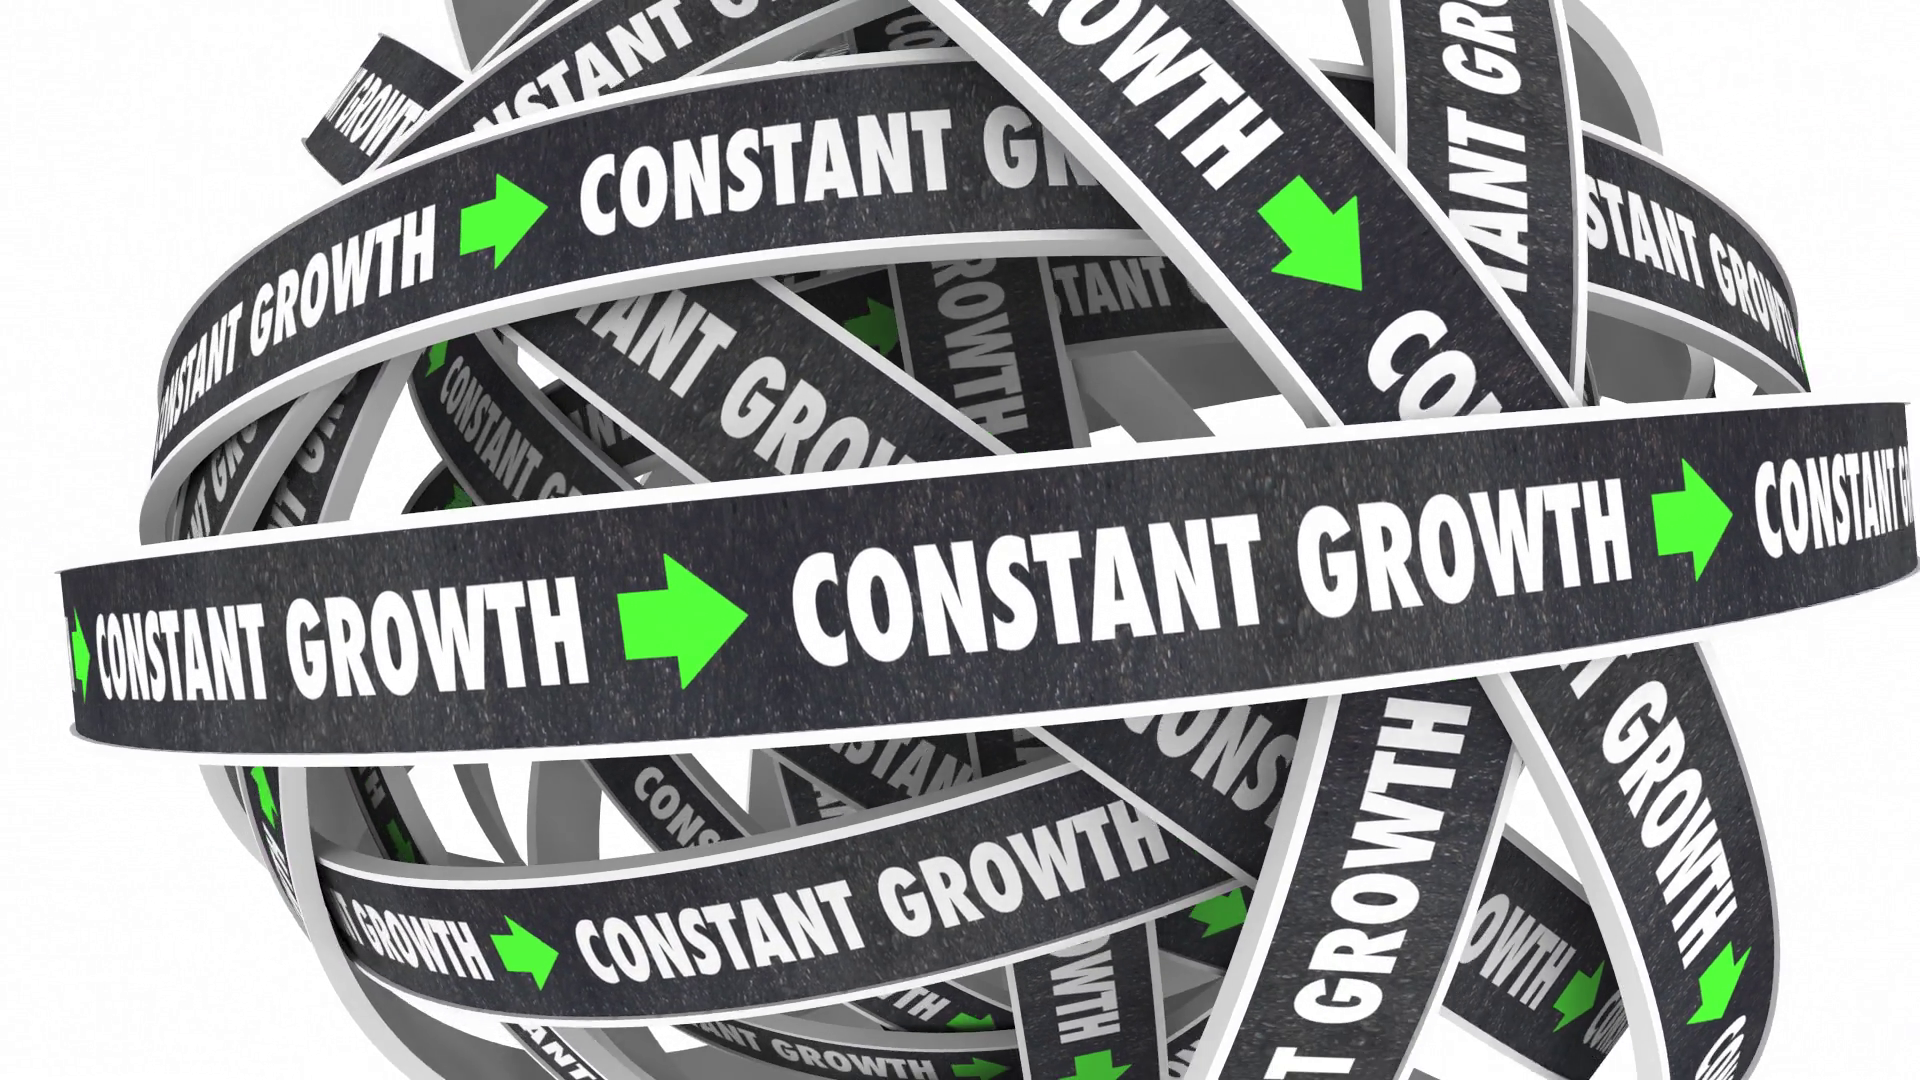 Constant Growth